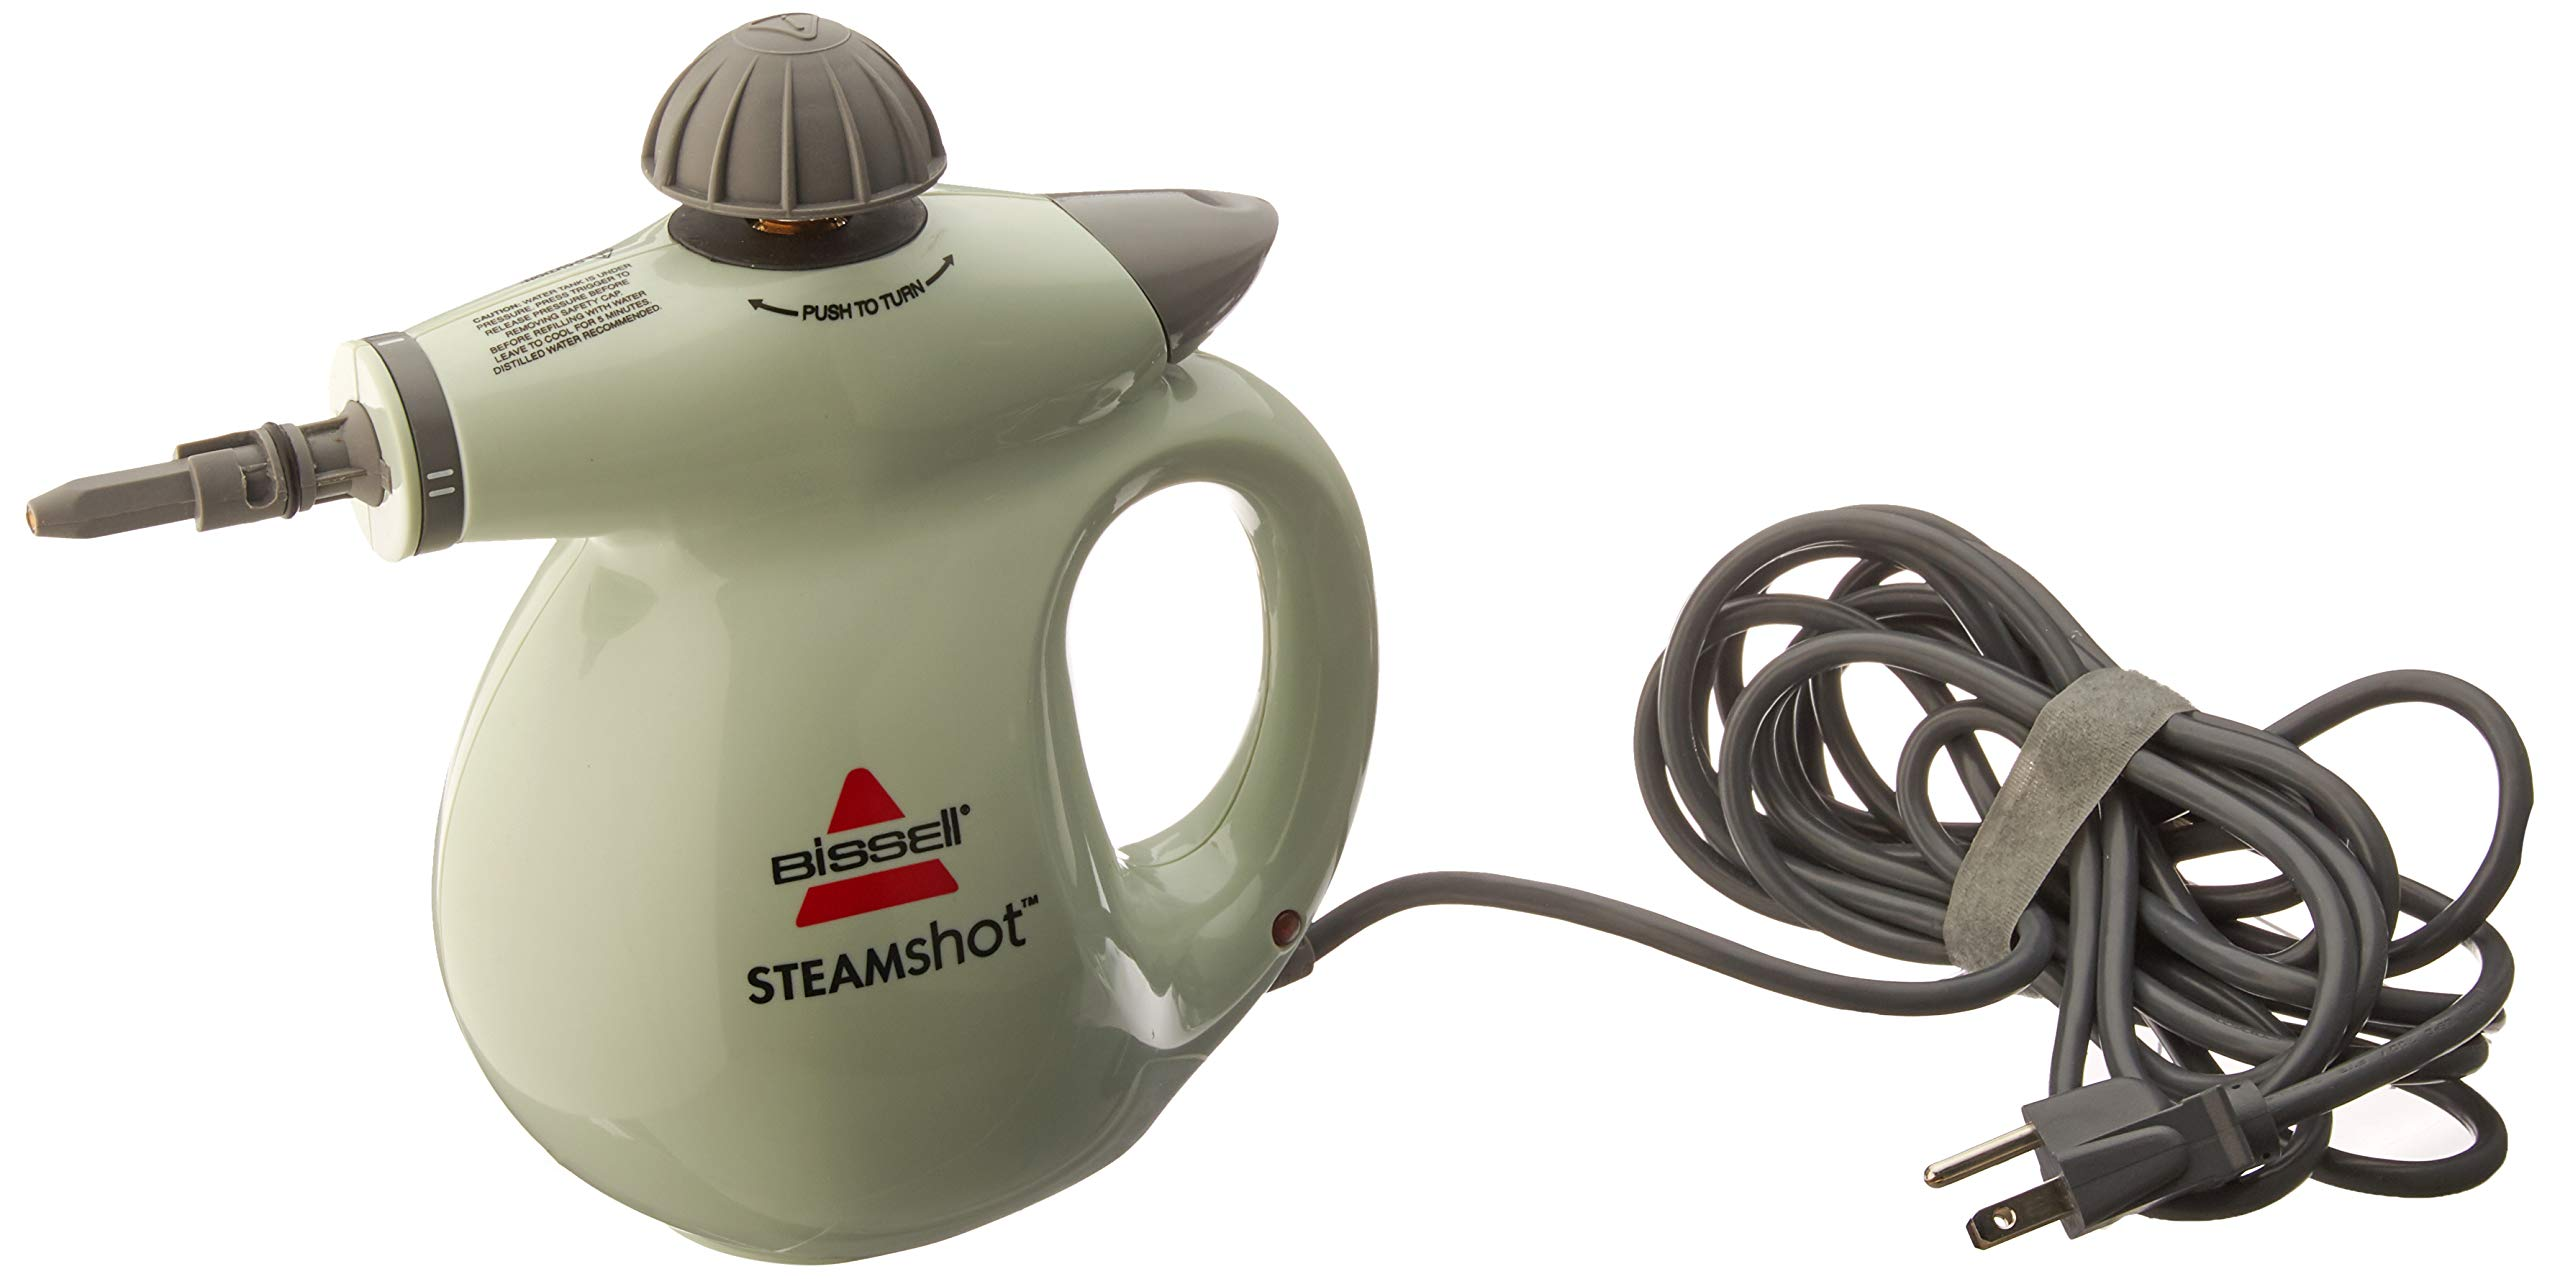 Bissell Steam Shot Hard-Surface Cleaner, 39N7A/39N71 (Renewed) by Bissell